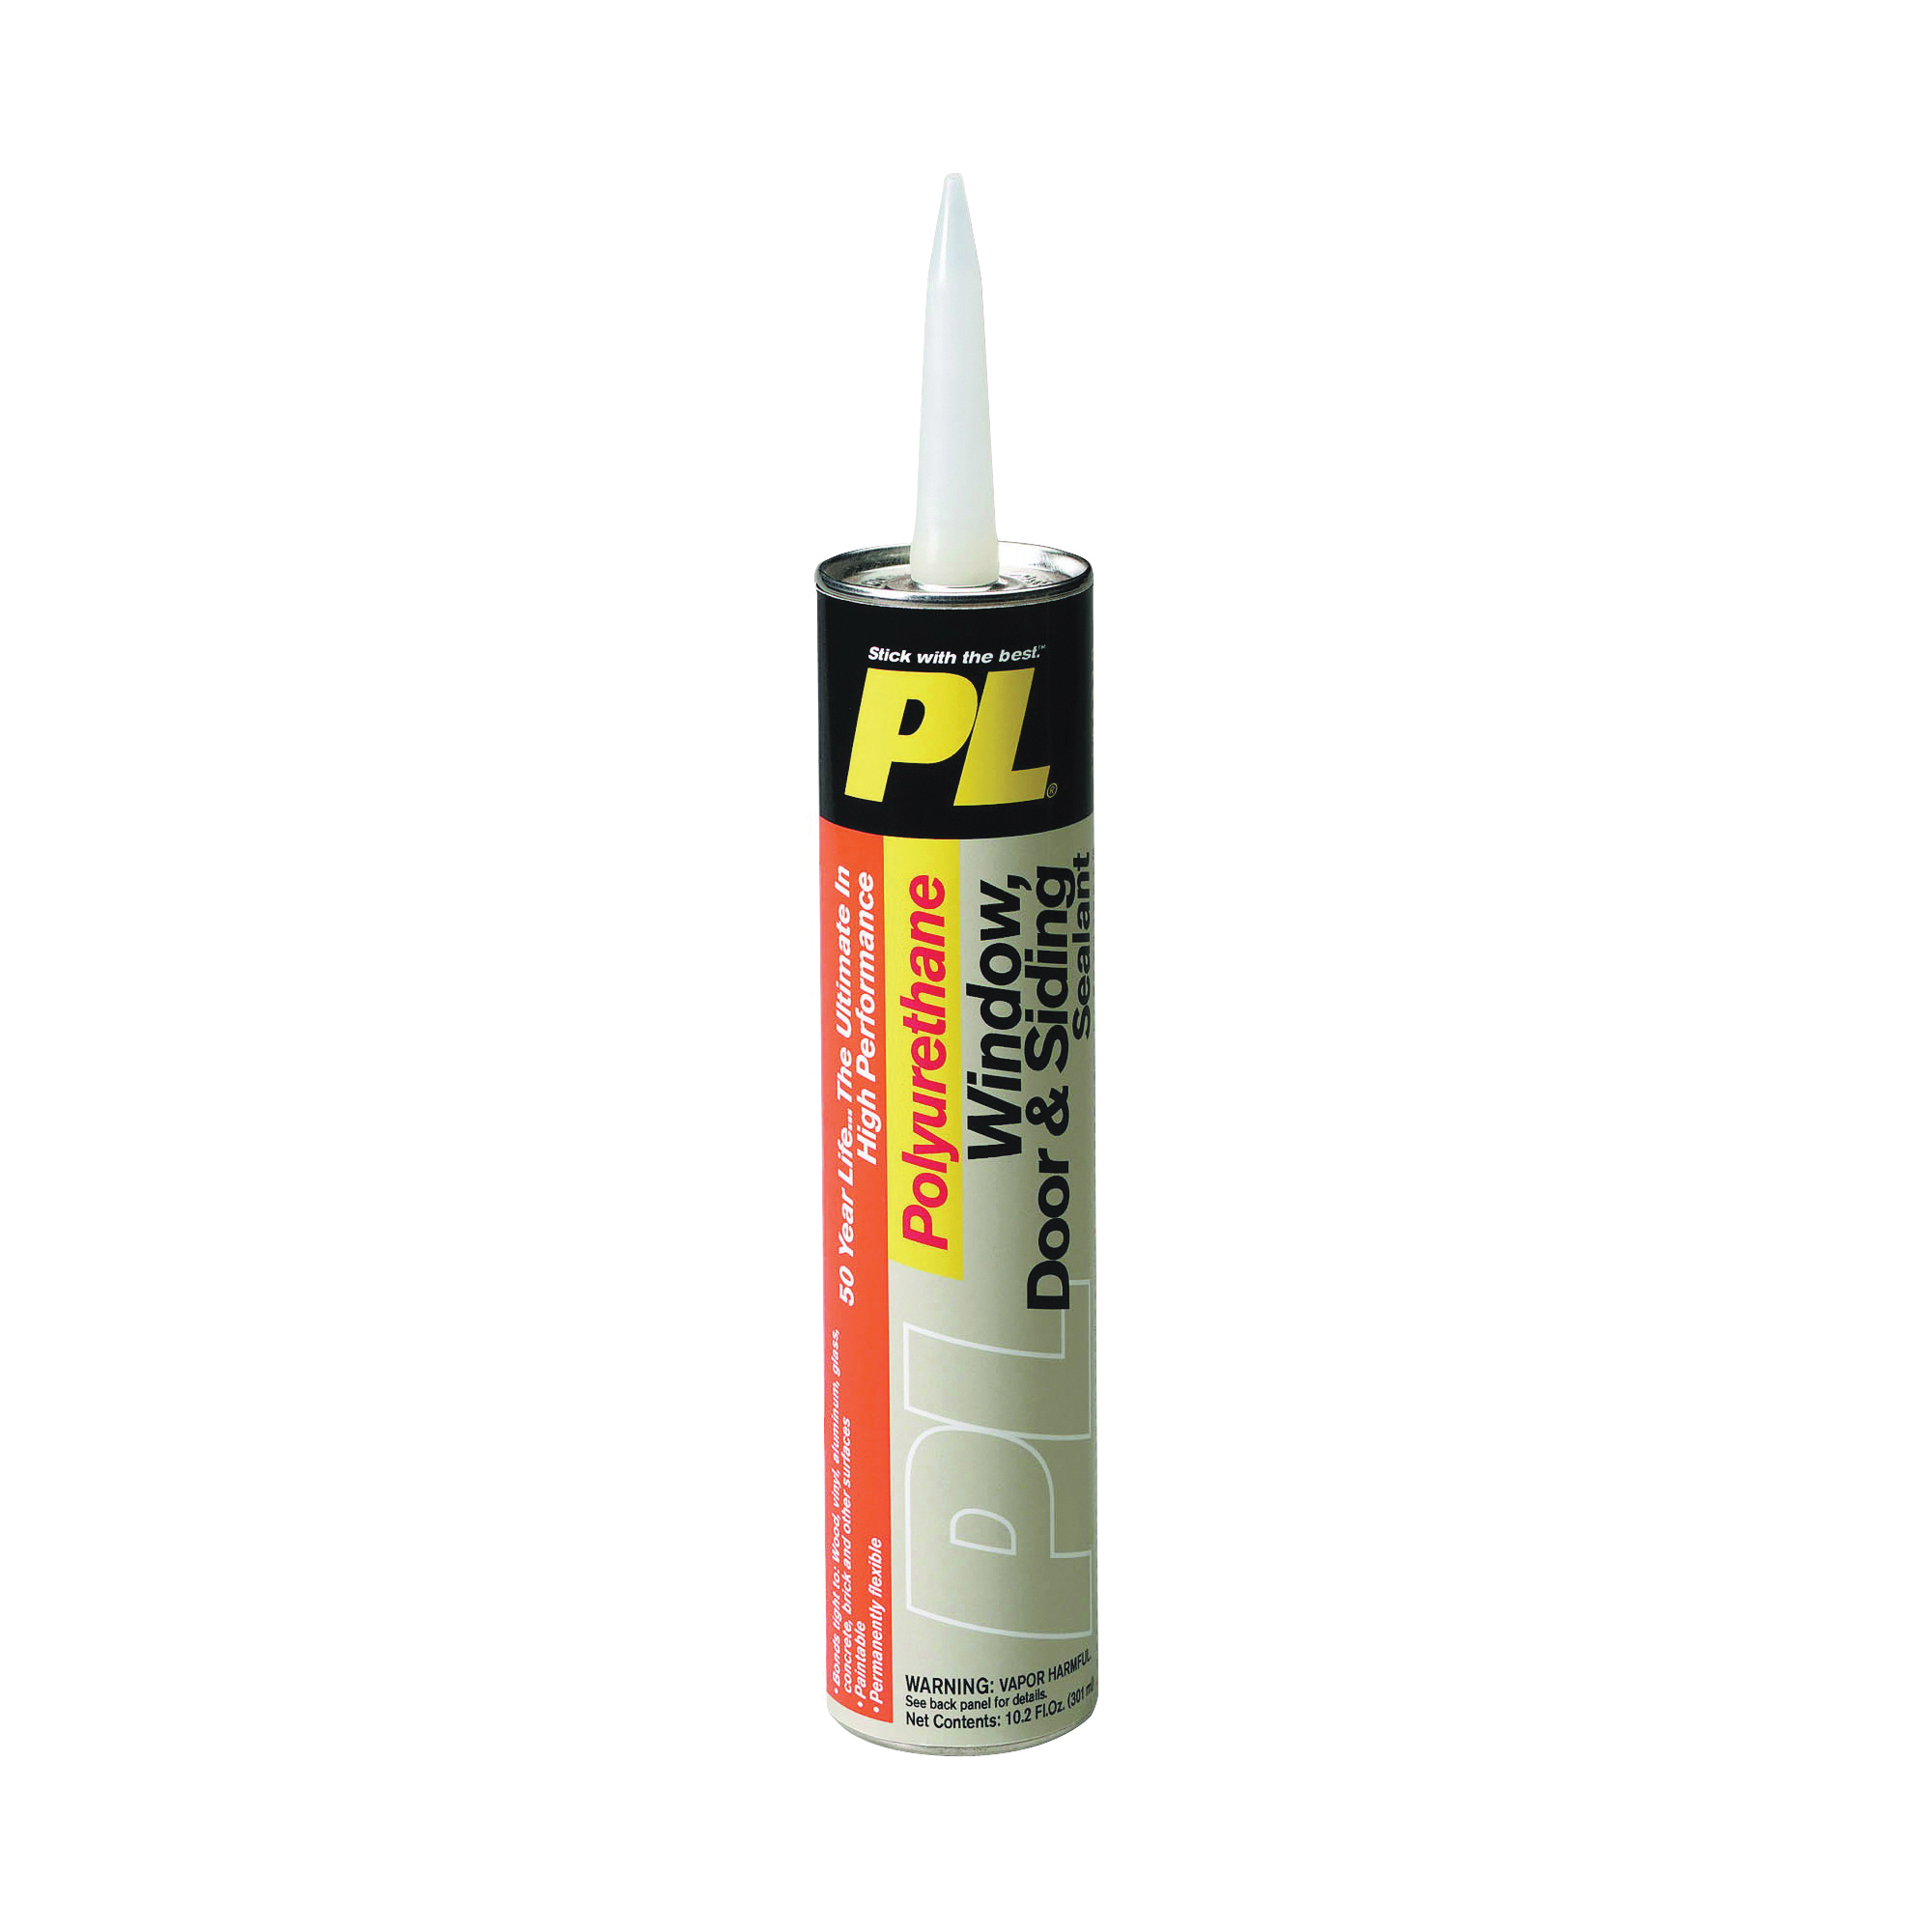 Picture of Loctite 1618176 Polyurethane Sealant, Gray, 7 Days Curing, 20 to 120 deg F, 10 oz Package, Cartridge